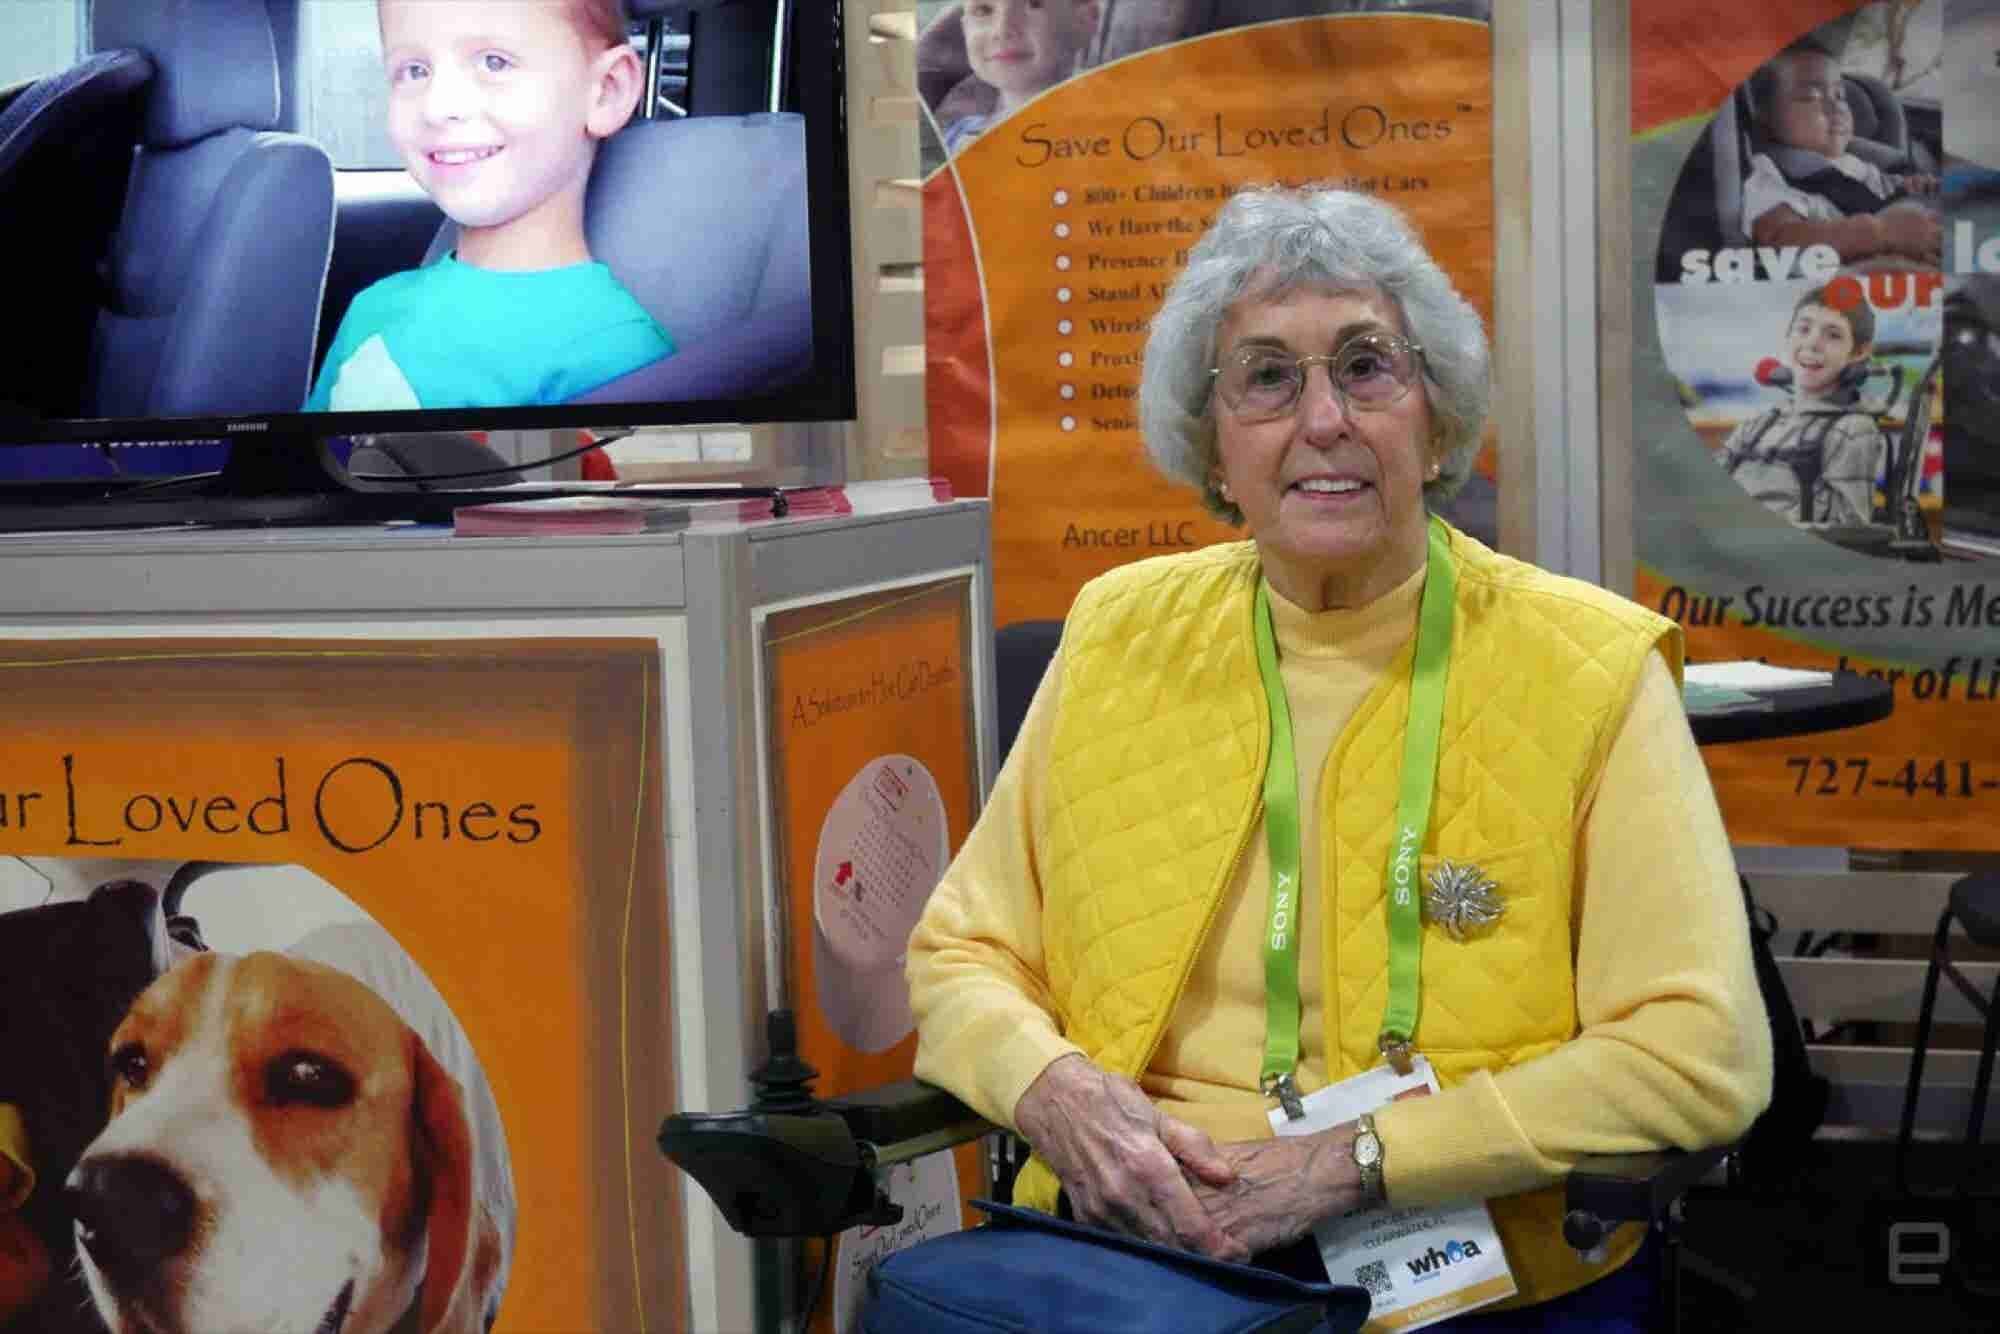 An 82-Year-Old Entrepreneur Makes Her First Appearance at CES -- and It's Amazing